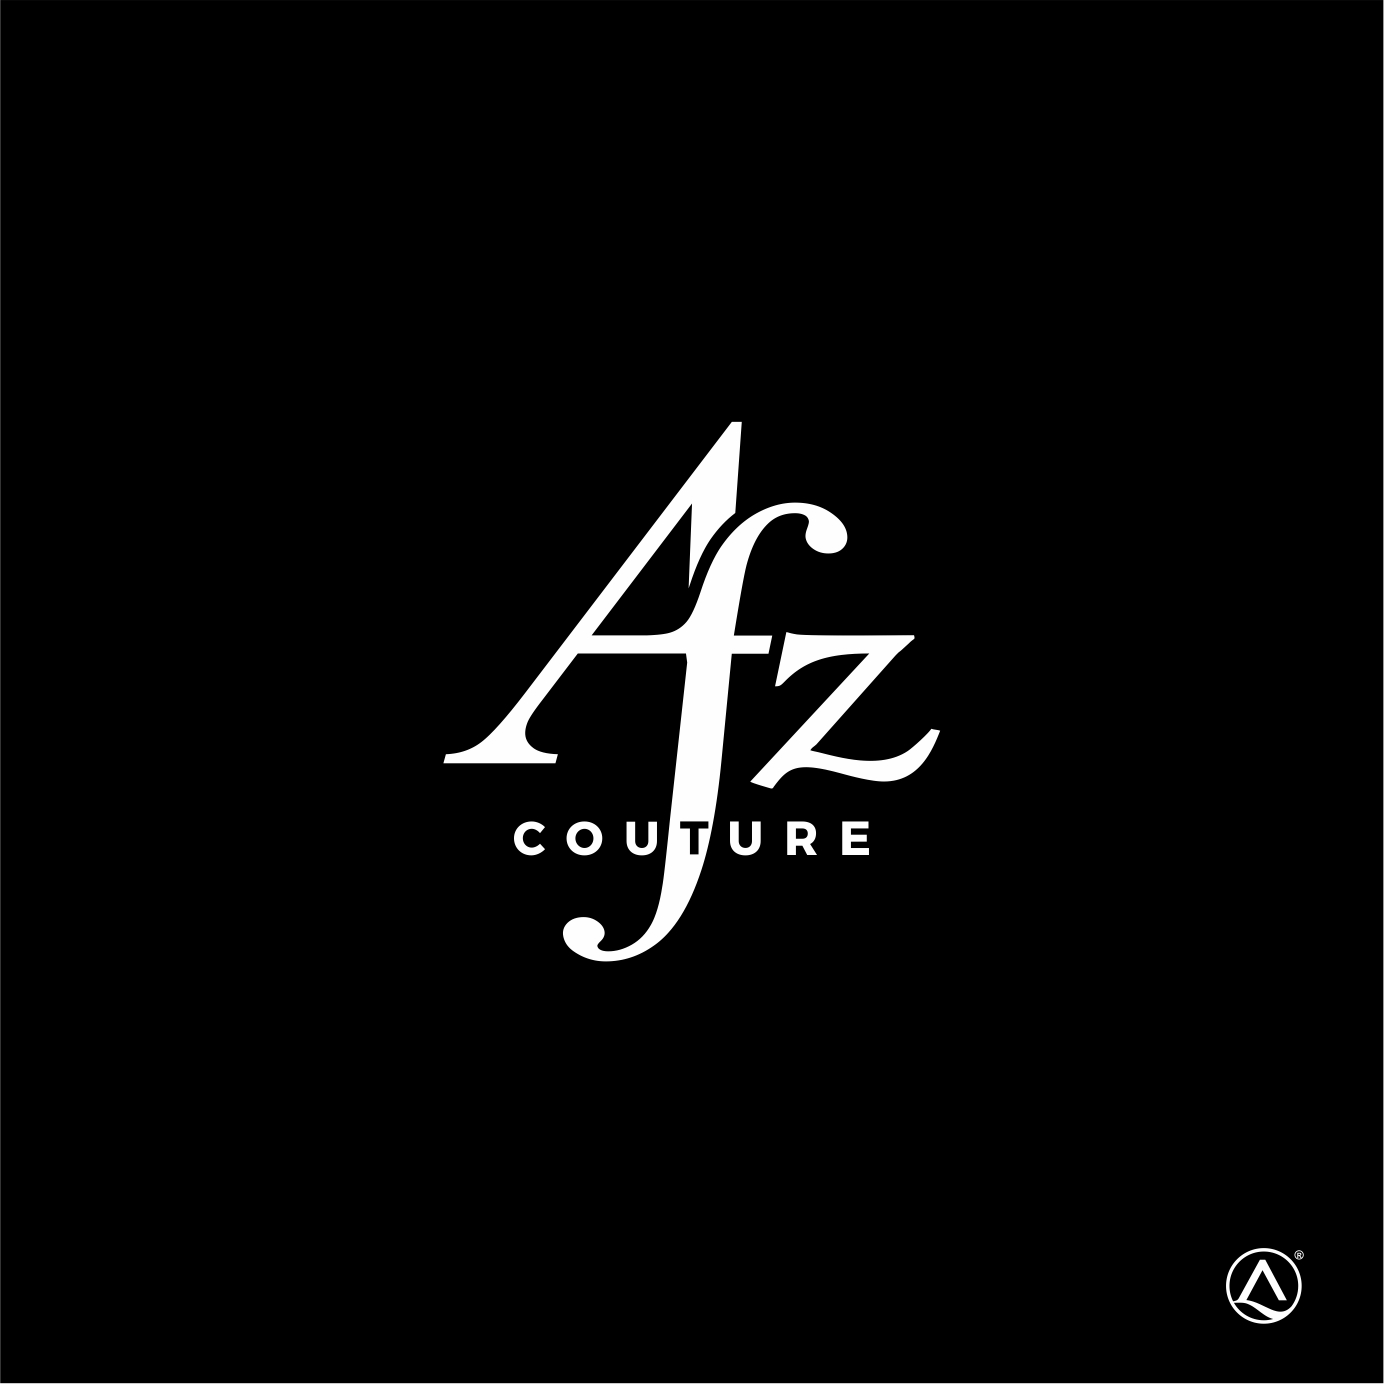 AFZ couture logo 4